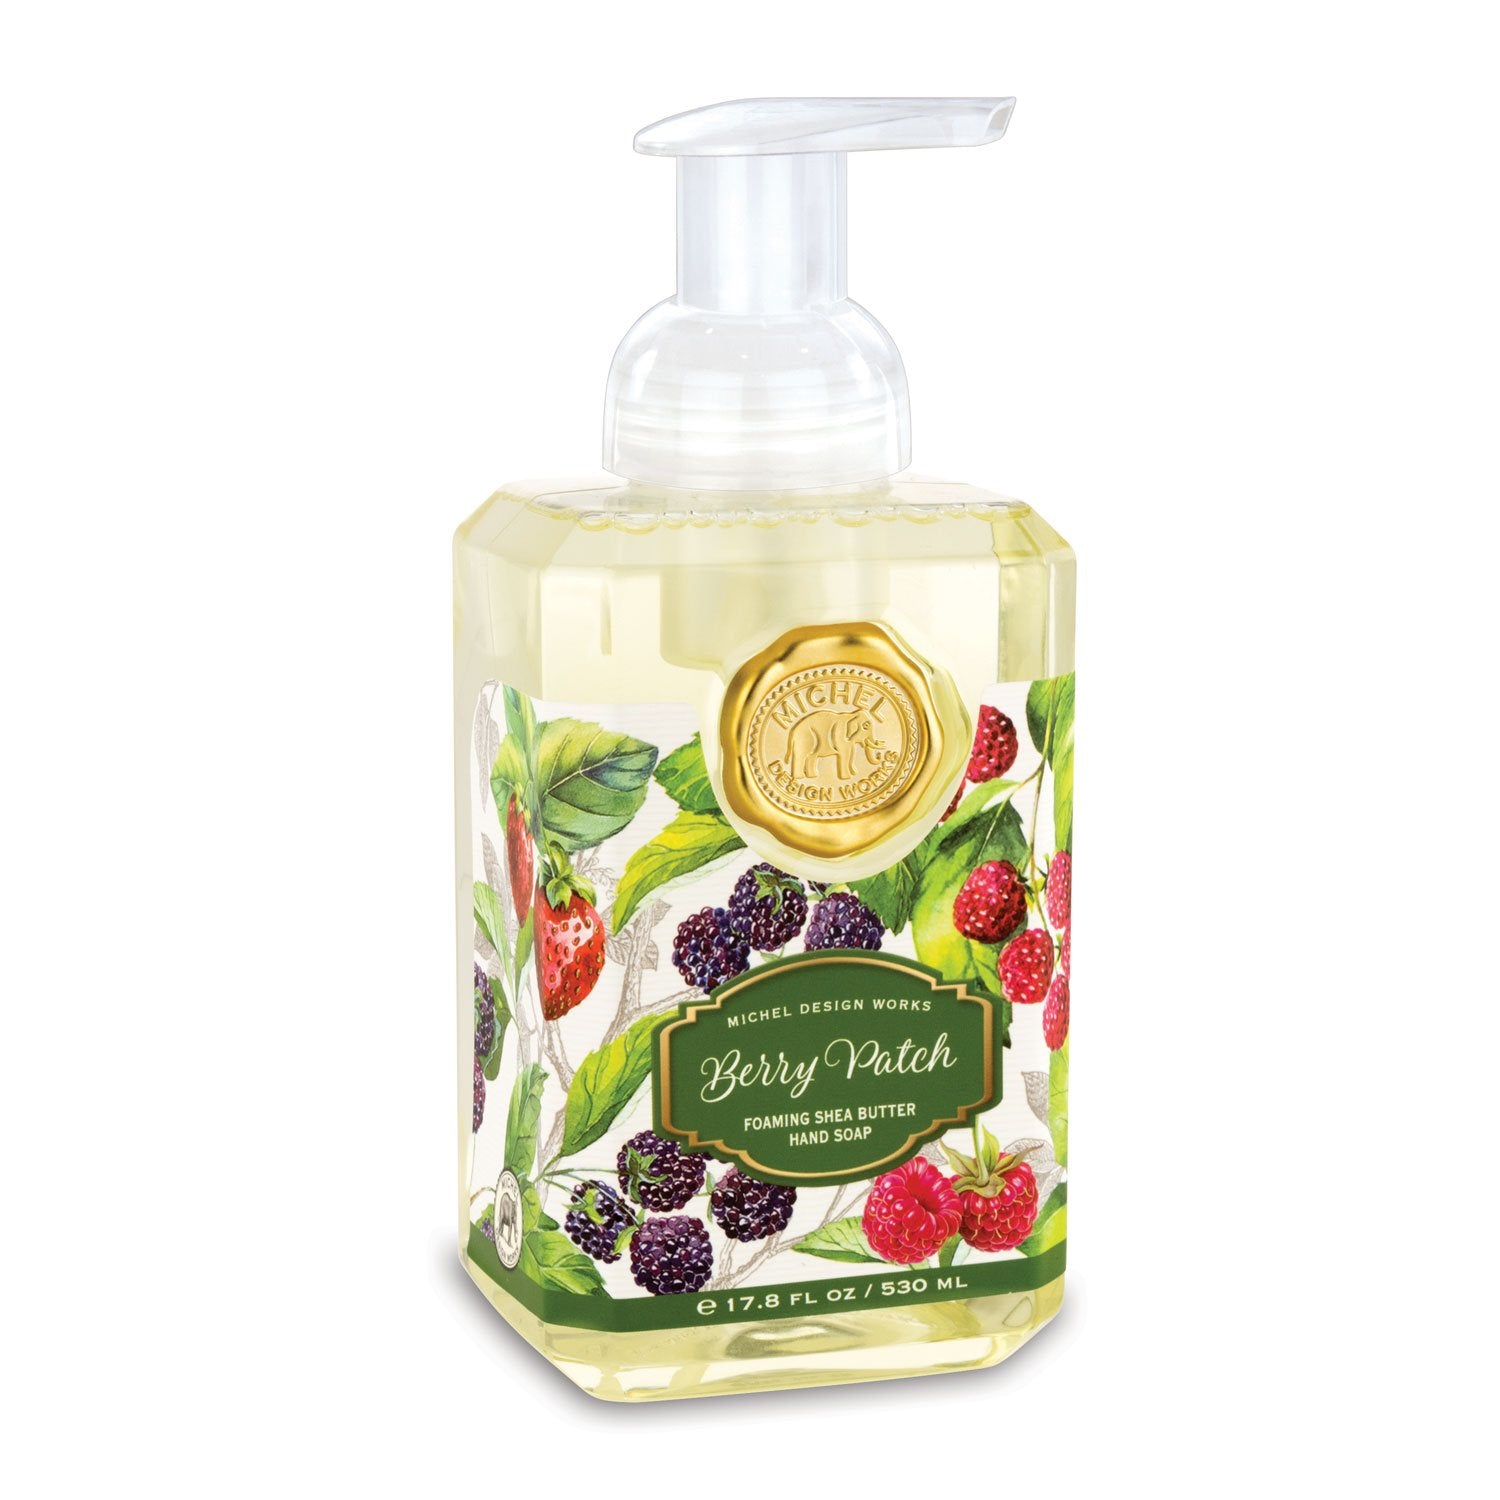 Foaming Hand Soap - Berry Patch